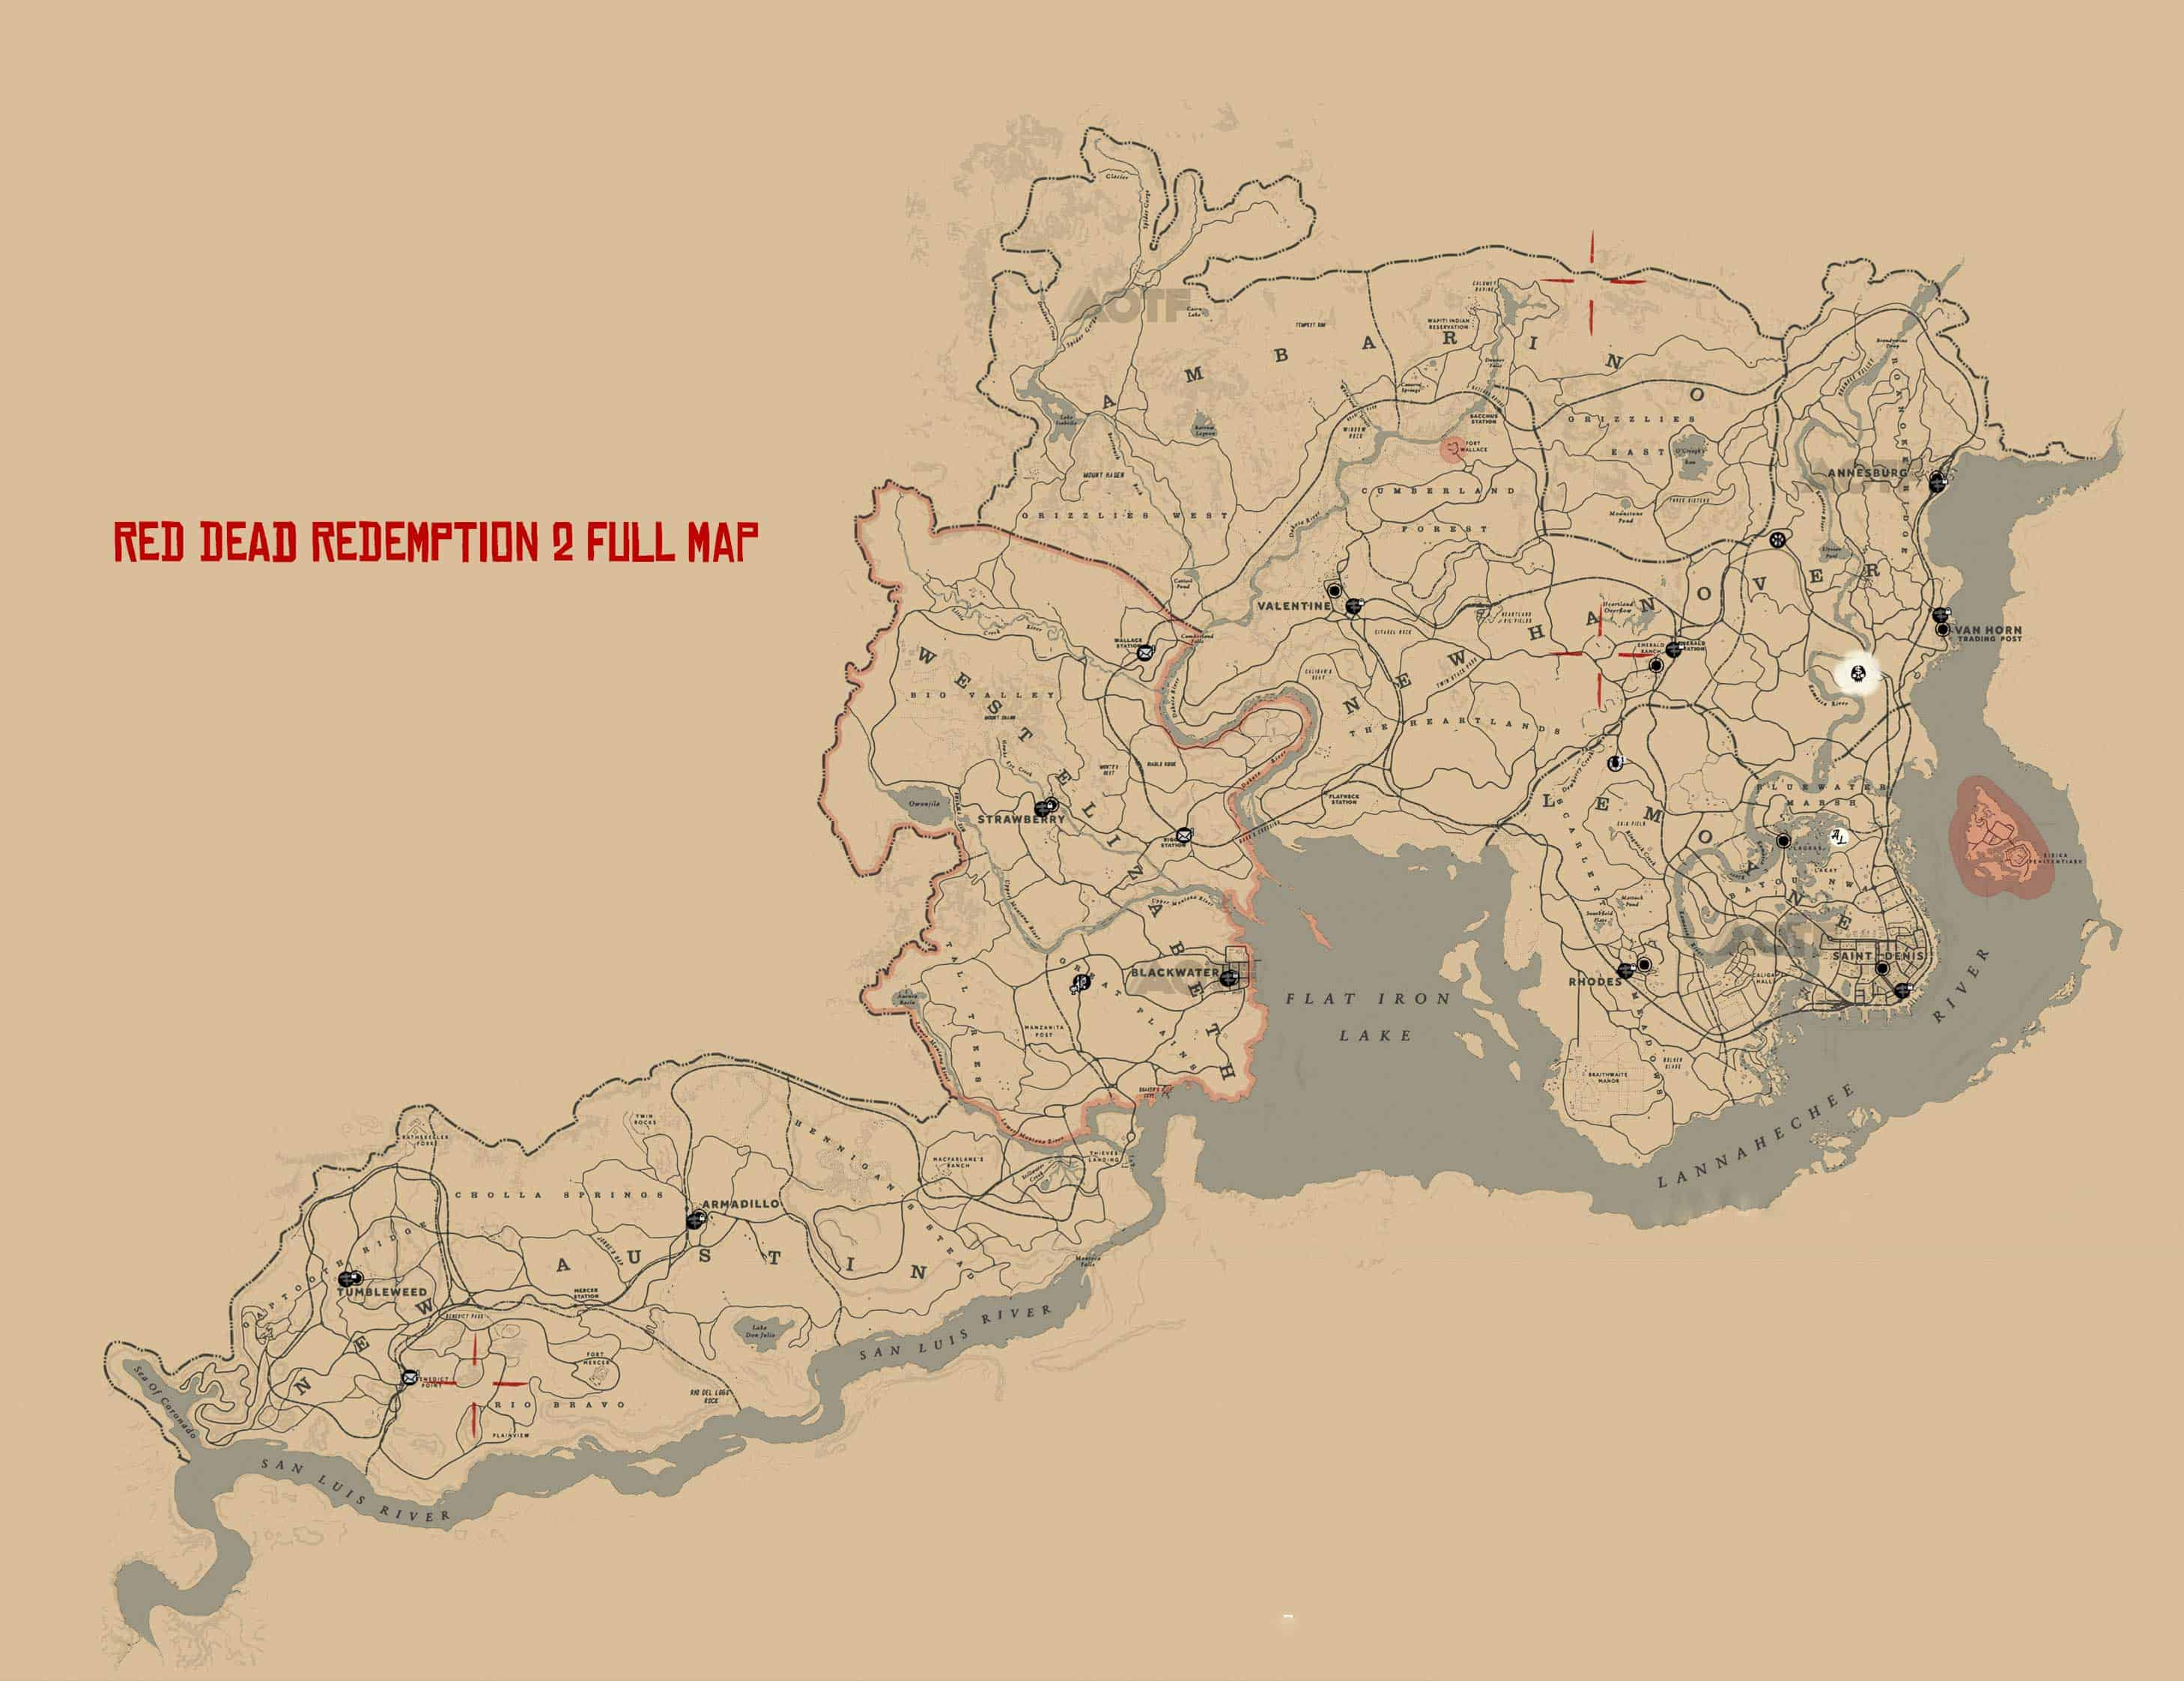 red dead redemption 2 flat iron lake